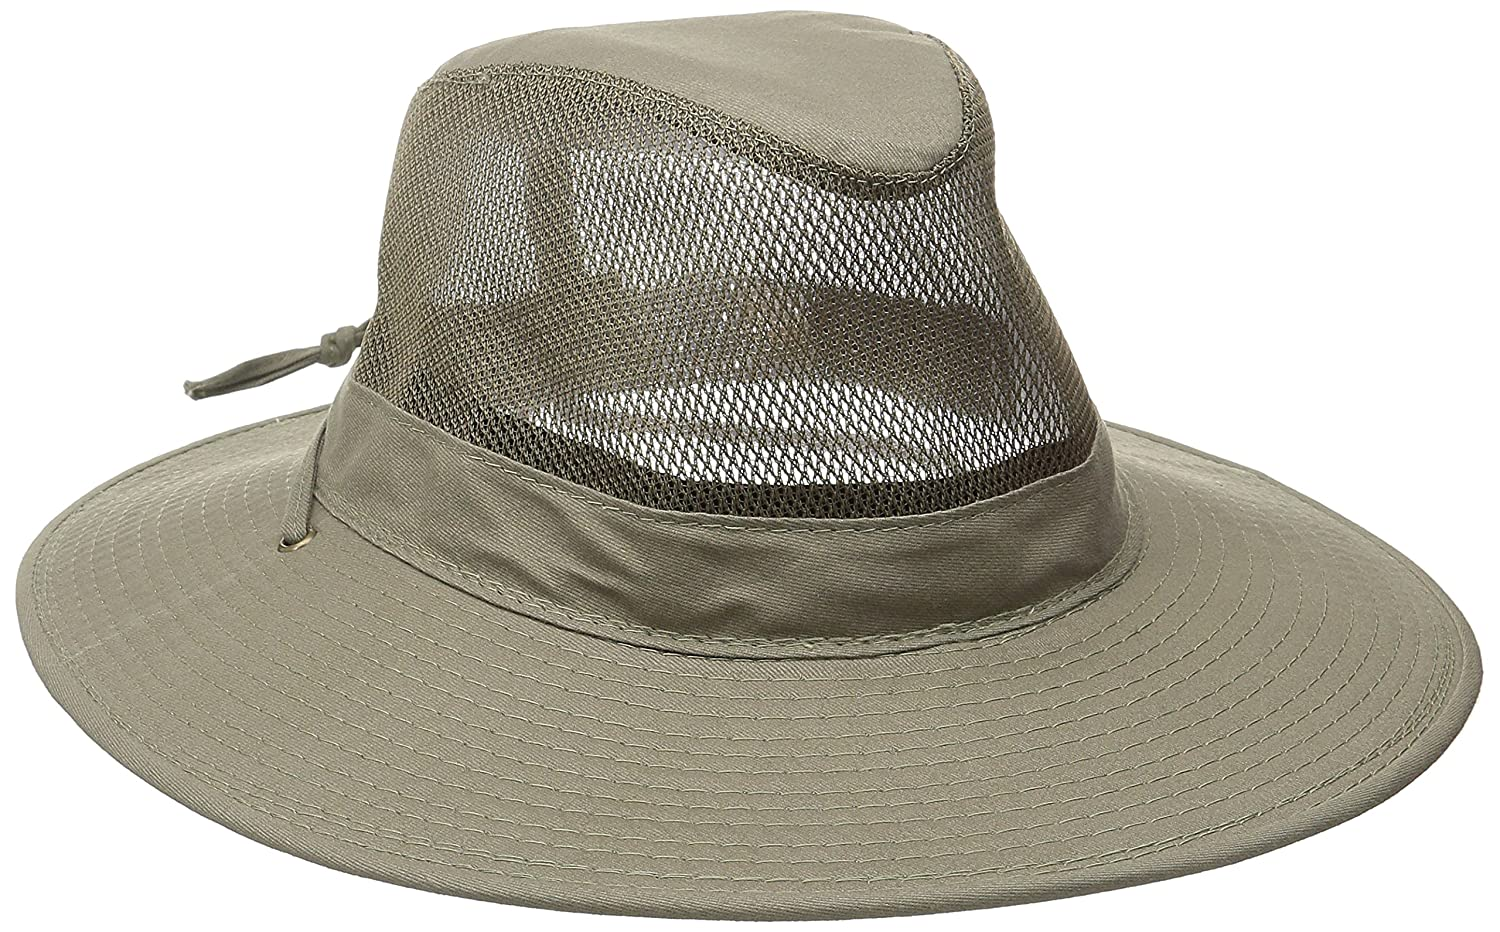 Dorfman Pacific DPC Outdoors Solarweave Treated Cotton Hat SPF4